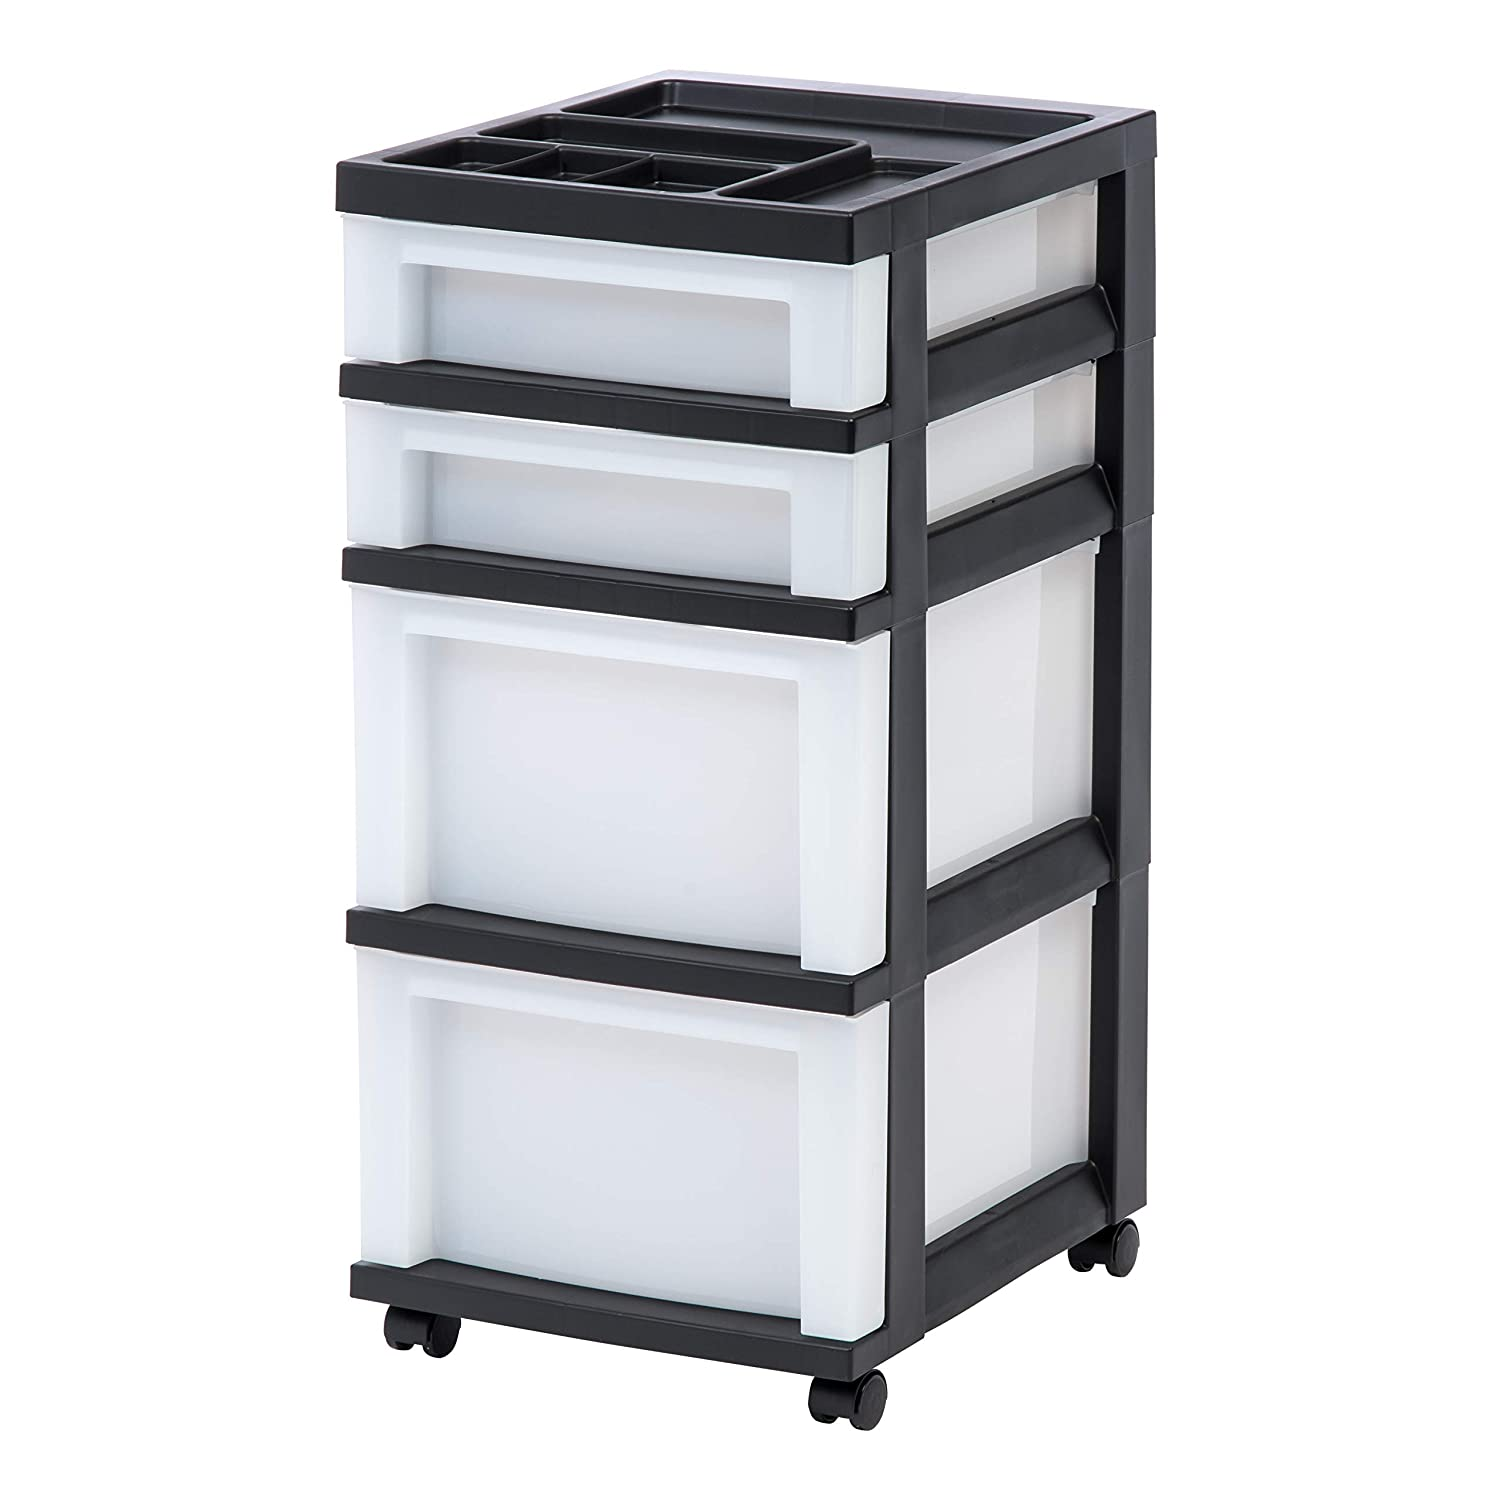 IRIS USA, Inc. MC-322-TOP 4-Drawer Storage Rolling Cart with Organizer Top, Black/Pearl